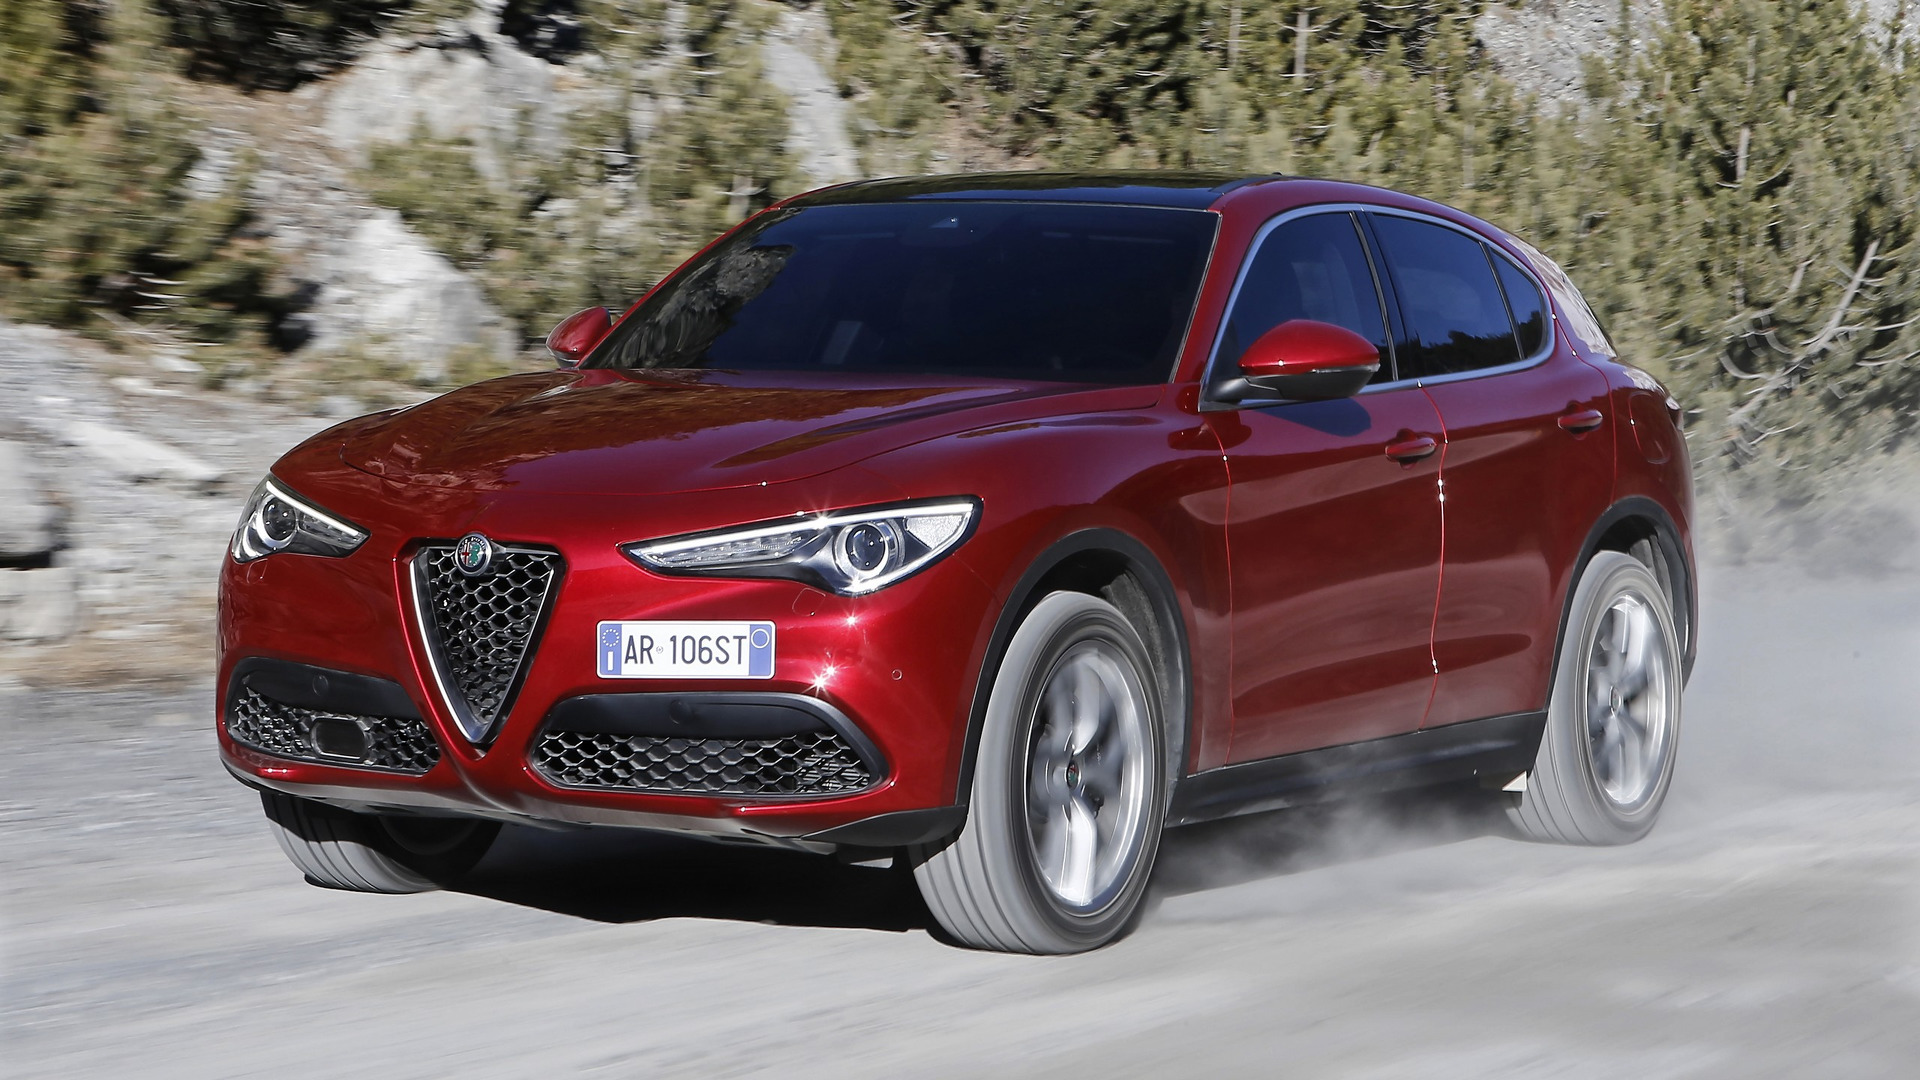 2017 Alfa Romeo Stelvio Euro Model Detailed In 151 Images 4 Videos